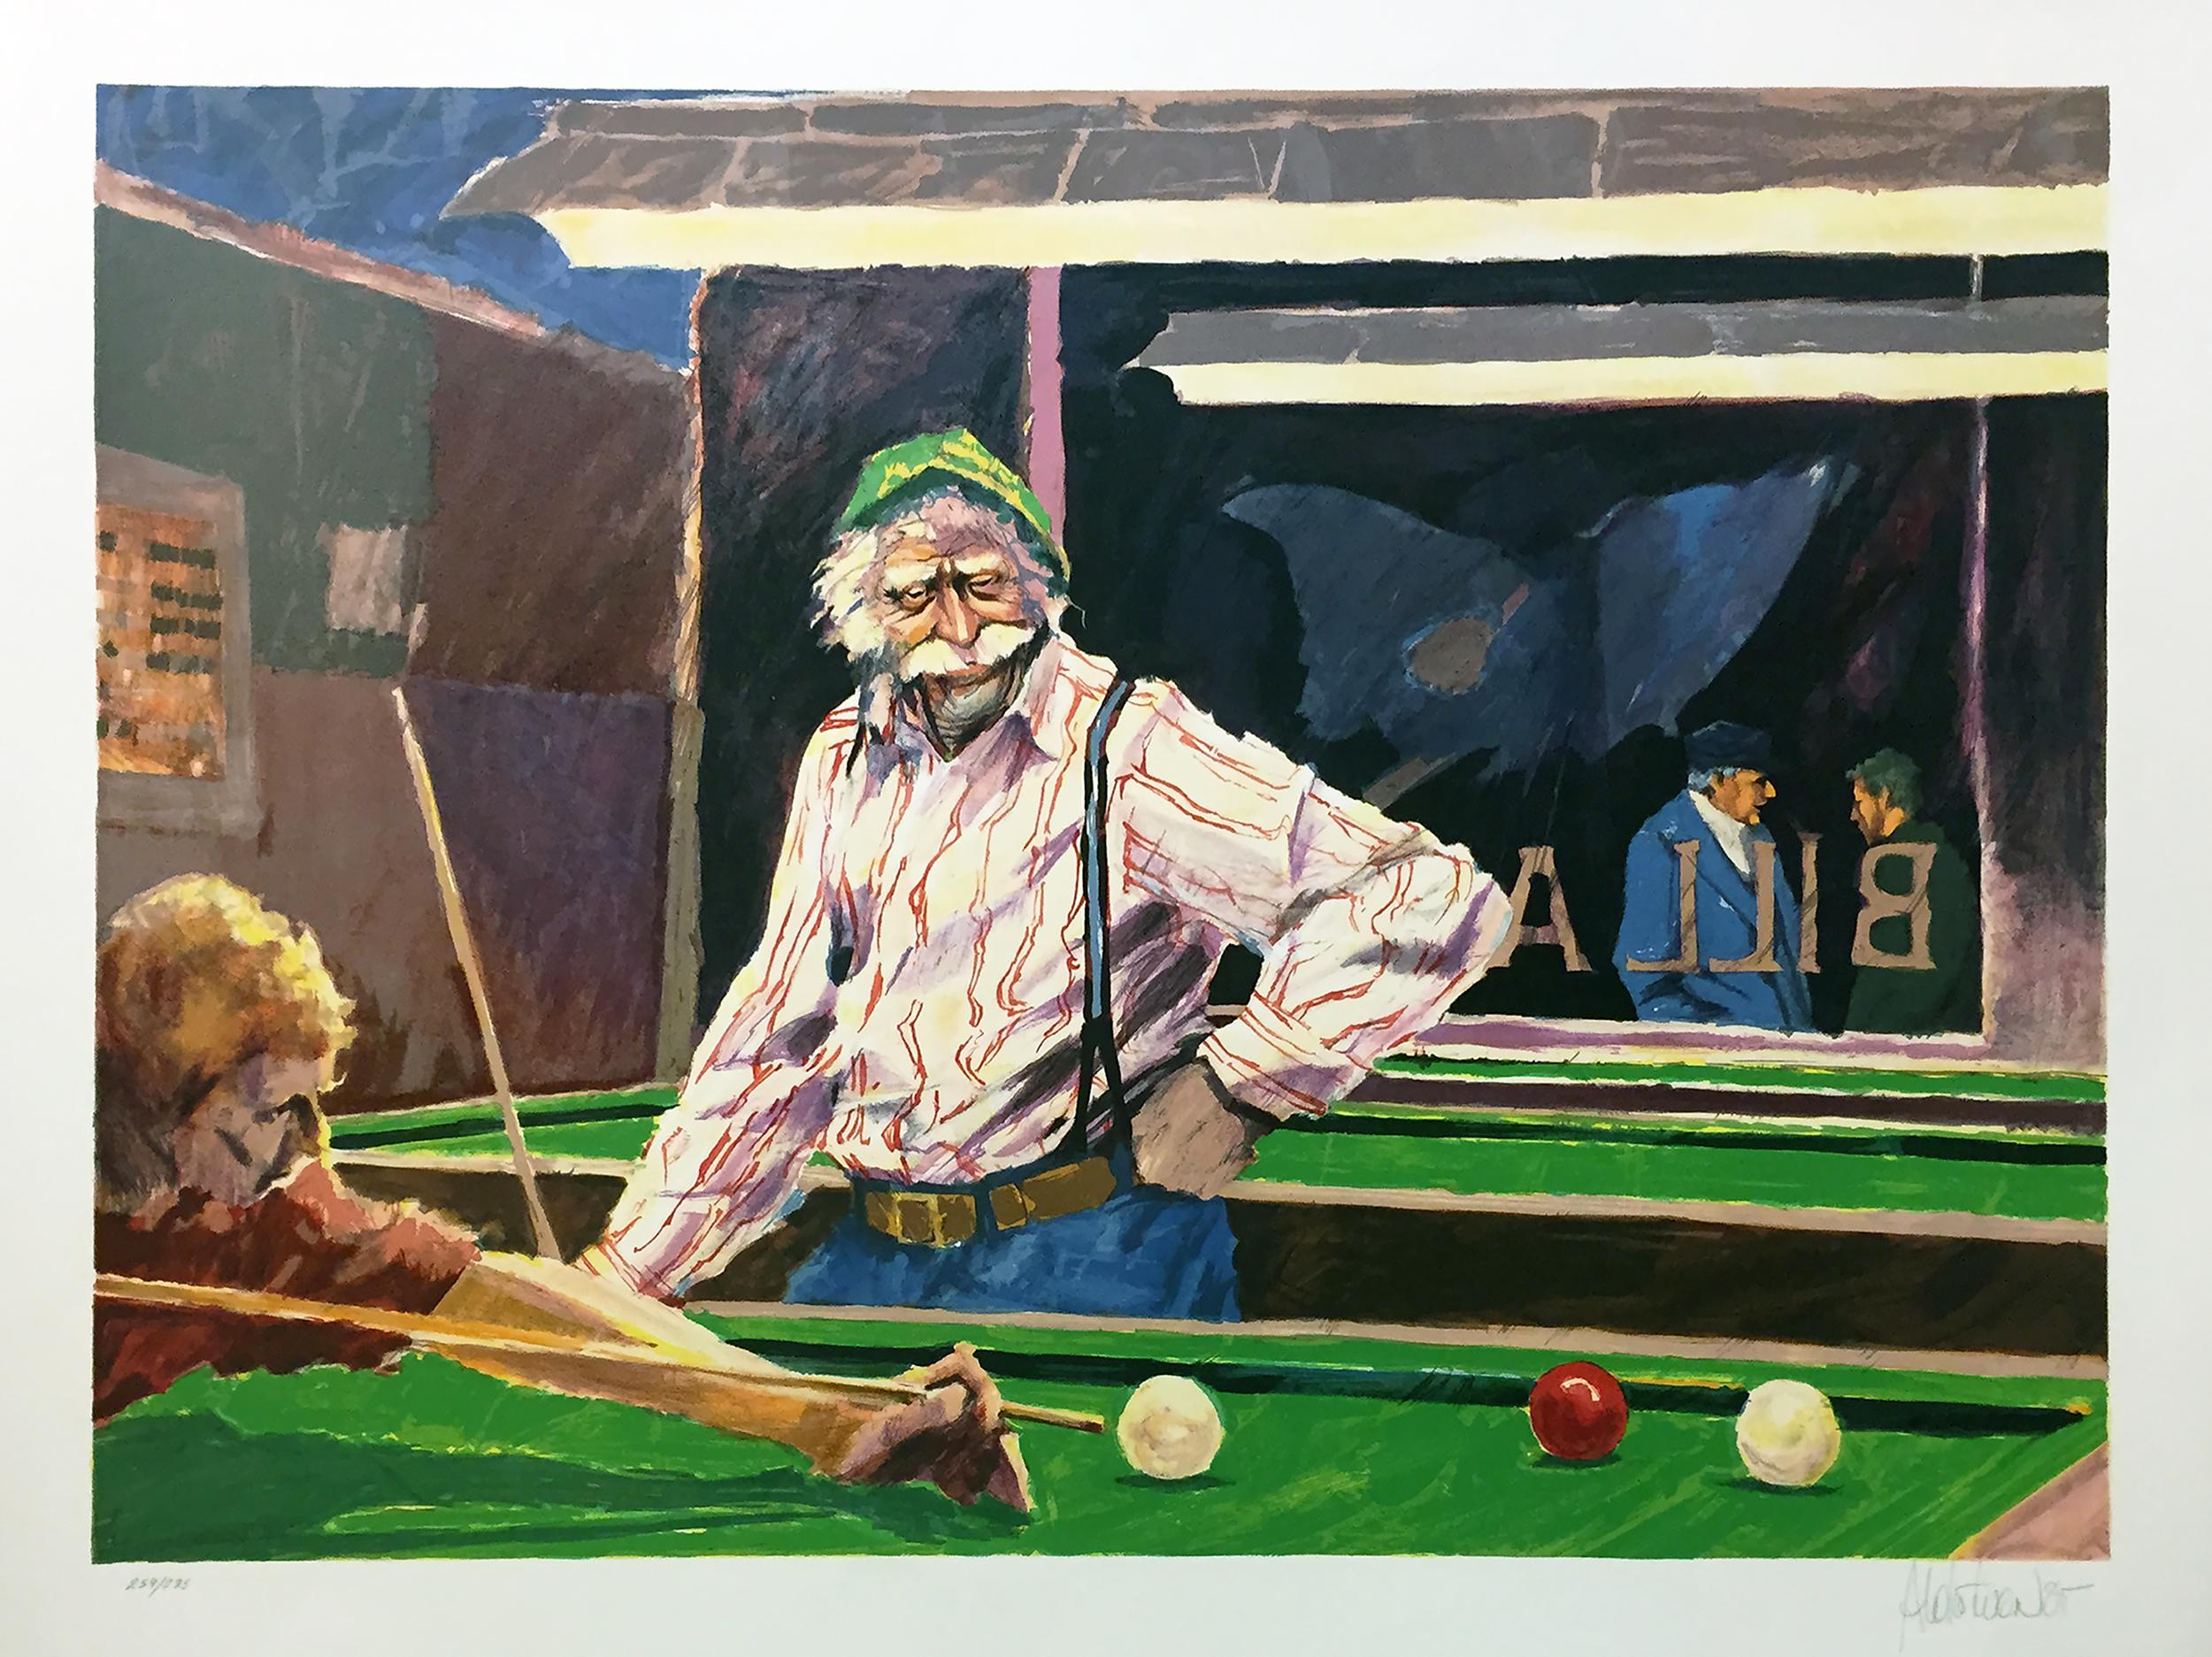 BILLIARDS AT CAFE PALERMO